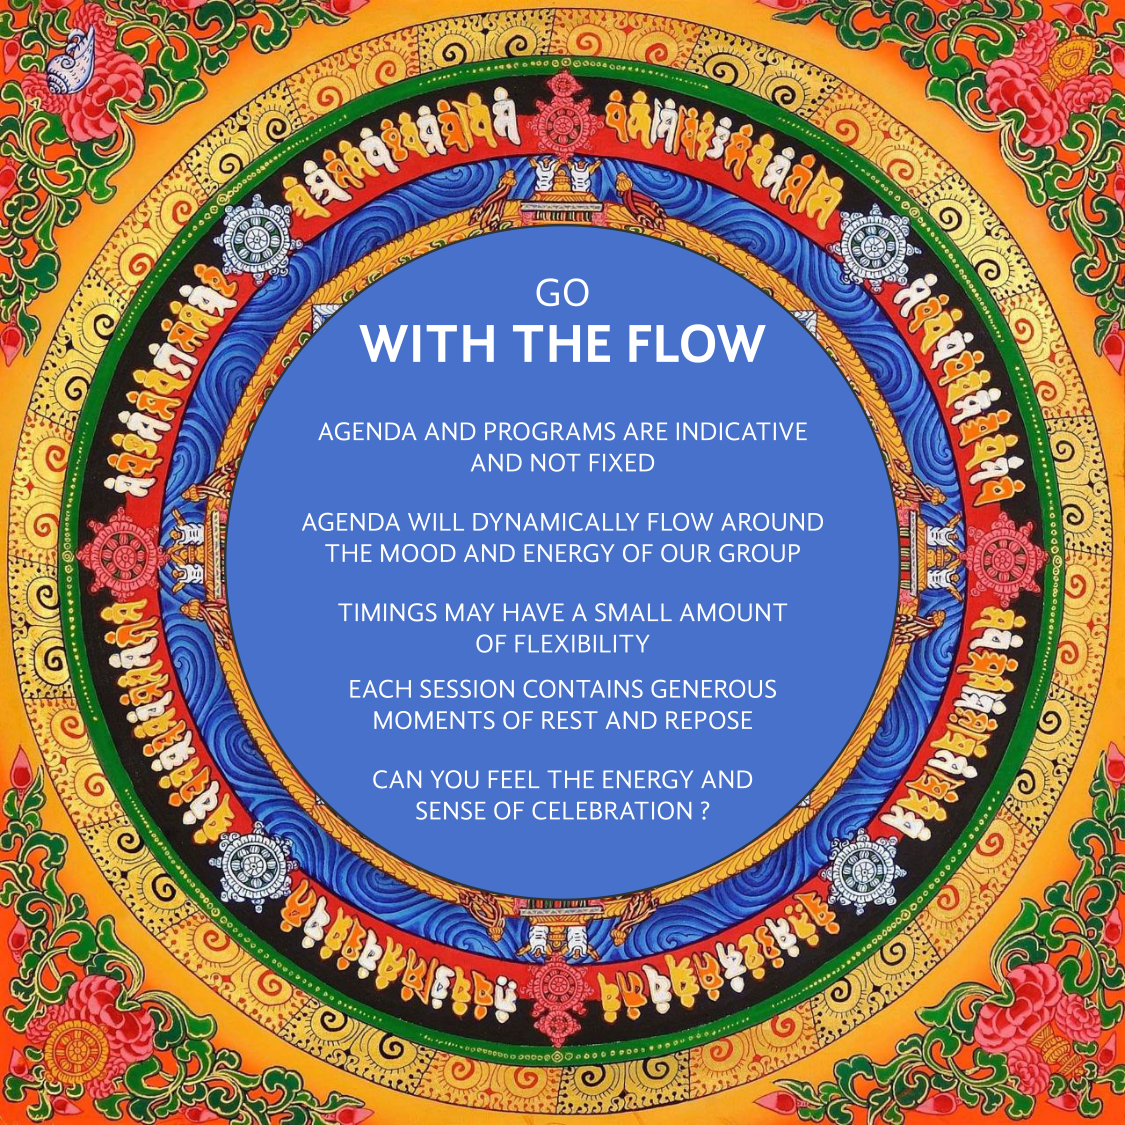 Go with the flow. Schedule of 'Awaken Your Creativity Through Design-Think' meditation retreat conducted by Niyam Bhushan at Alsisar Mahal in Rajasthan